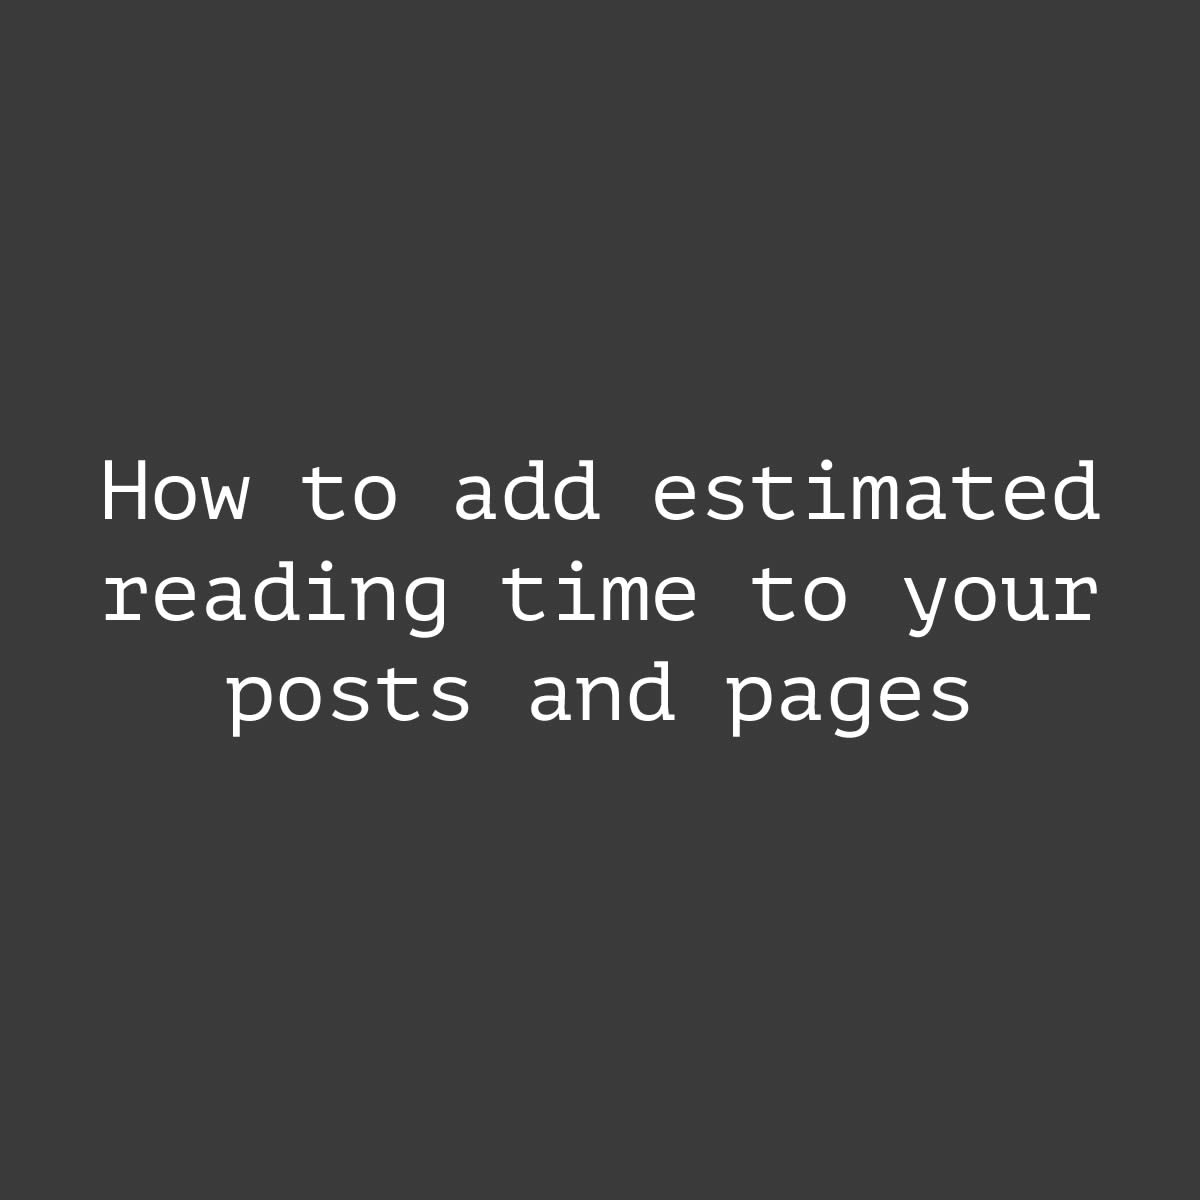 How to add estimated reading time to your posts and pages